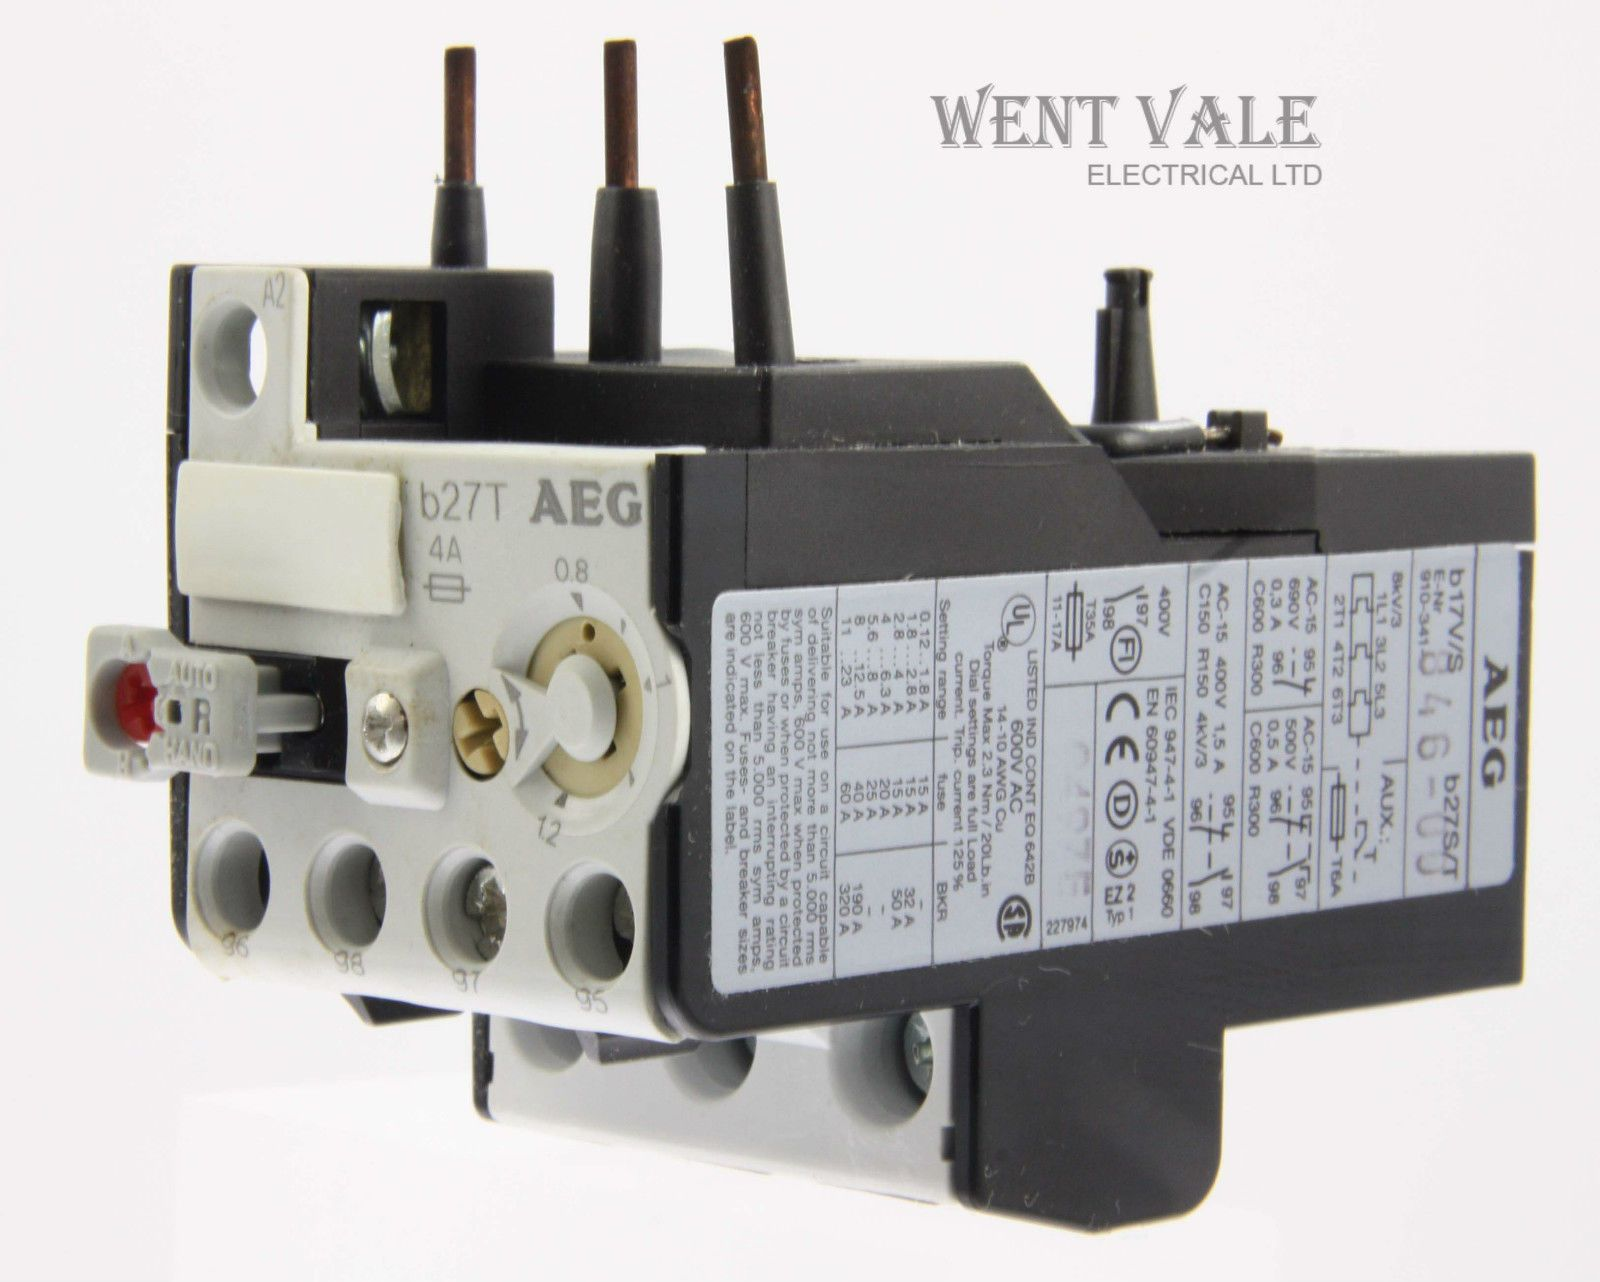 Aeg B27t 910 341 846 00 4a Thermal Overload Relay 0 8